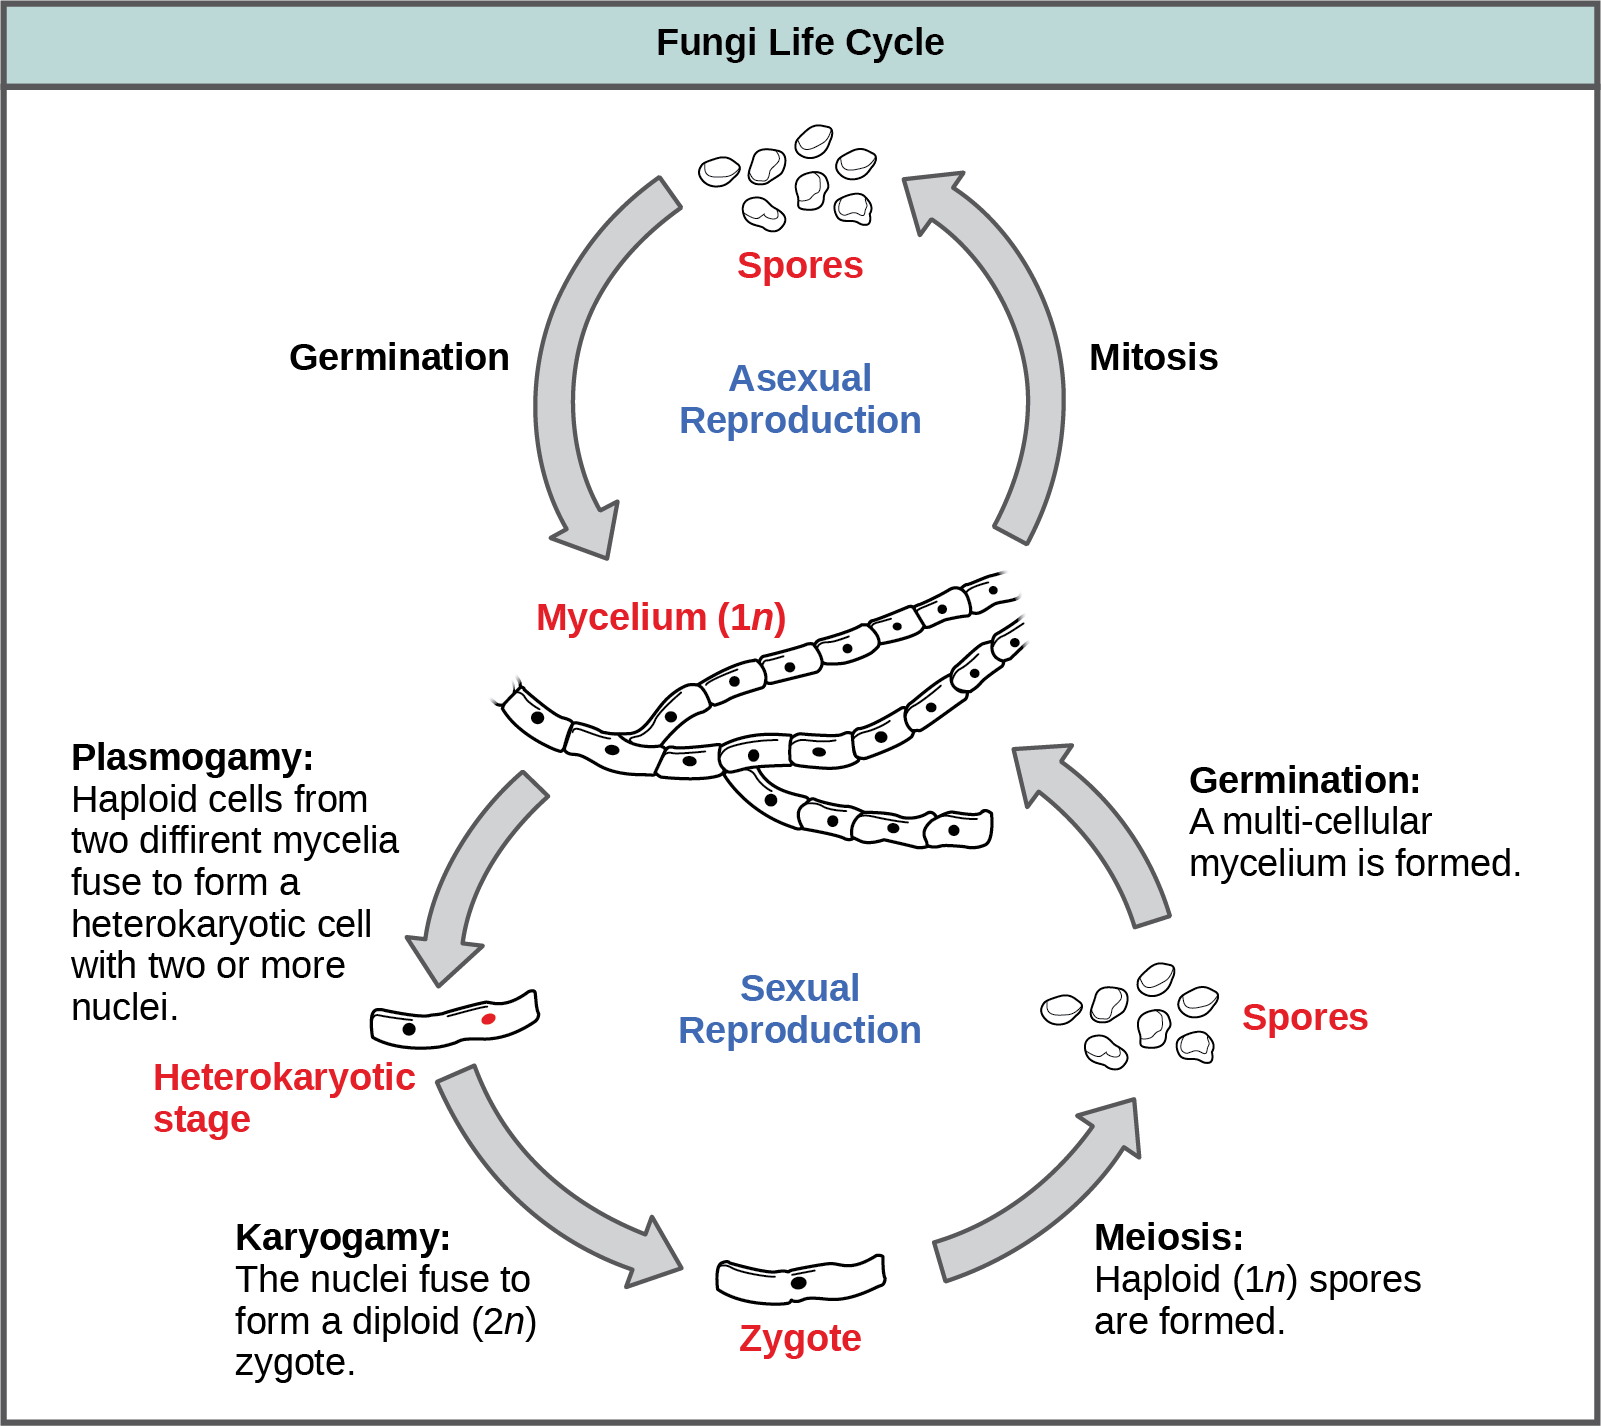 The asexual and sexual stages of reproduction of fungi are shown. In the asexual life cycle, a haploid (1n) mycelium undergoes mitosis to form spores. Germination of the spores results in the formation of more mycelia. In the sexual life cycle, the mycelium undergoes plasmogamy, a process in which haploid cells fuse to form a heterokaryon (a cell with two or more haploid nuclei). This is called the heterokaryotic stage. The dikaryotic cells (cells with two more more nuclei) undergo karyogamy, a process in which the nuclei fuse to form a diploid (2n) zygote. The zygote undergoes meiosis to form haploid (1n) spores. Germination of the spores results in the formation of a multicellular mycelium.